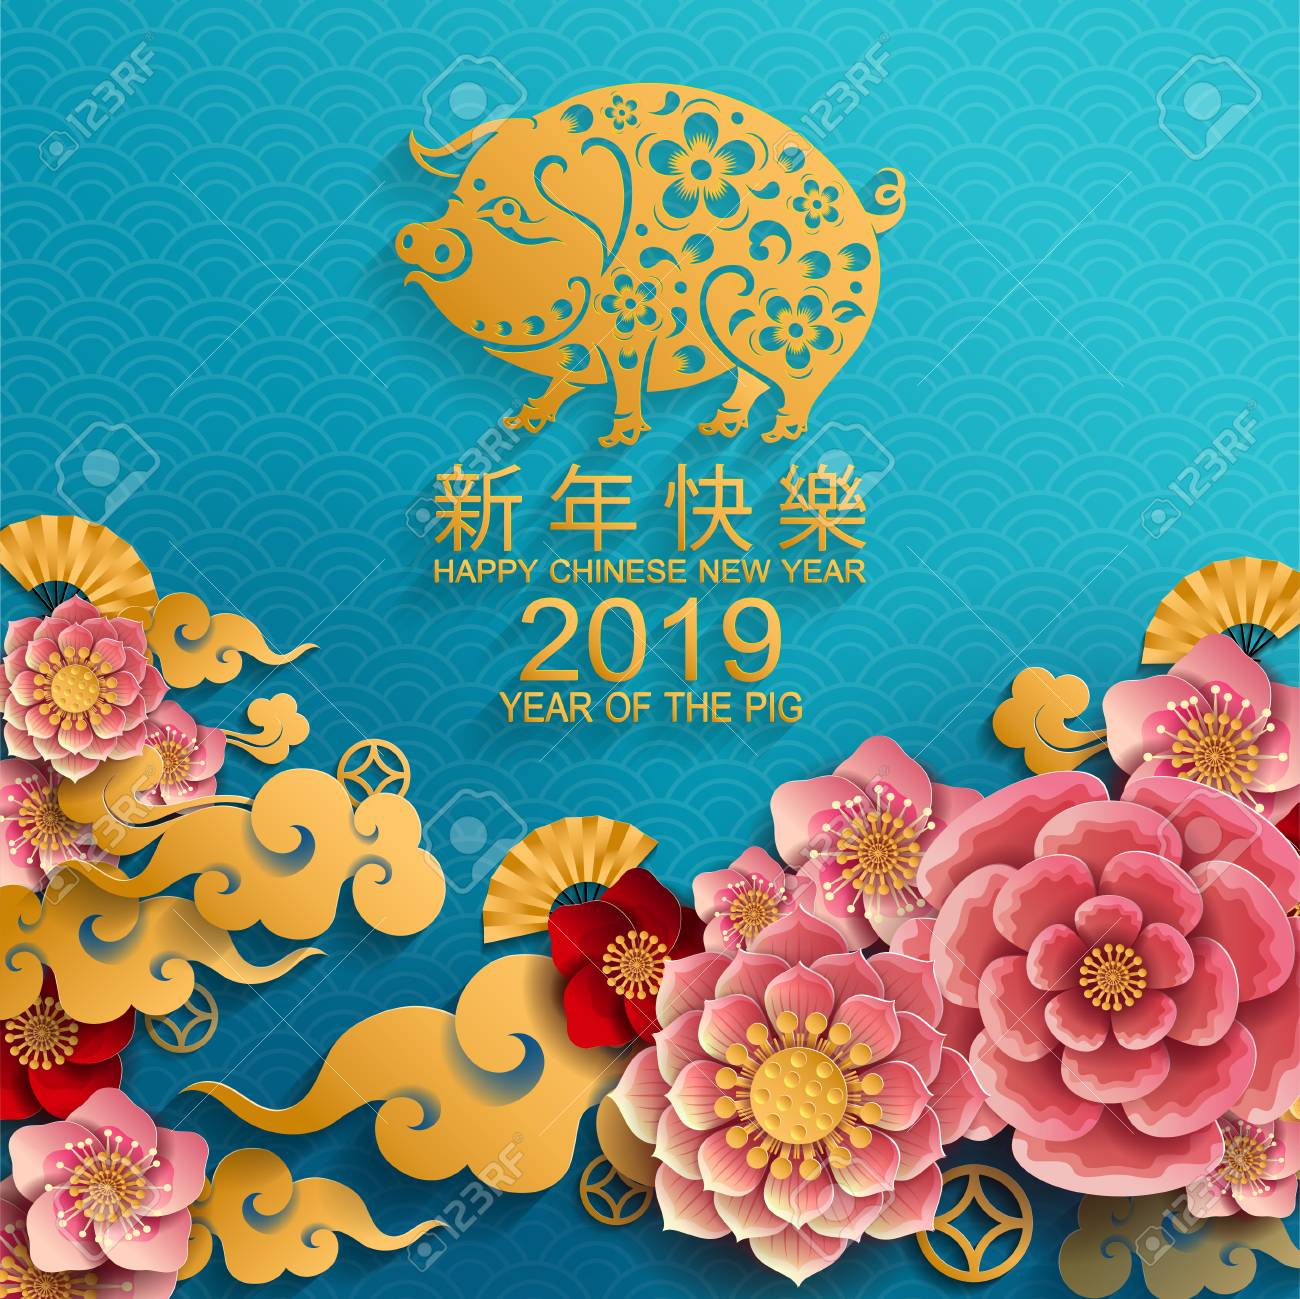 Happy Chinese New Year 2019 Zodiac Sign With Gold Paper Cut Art